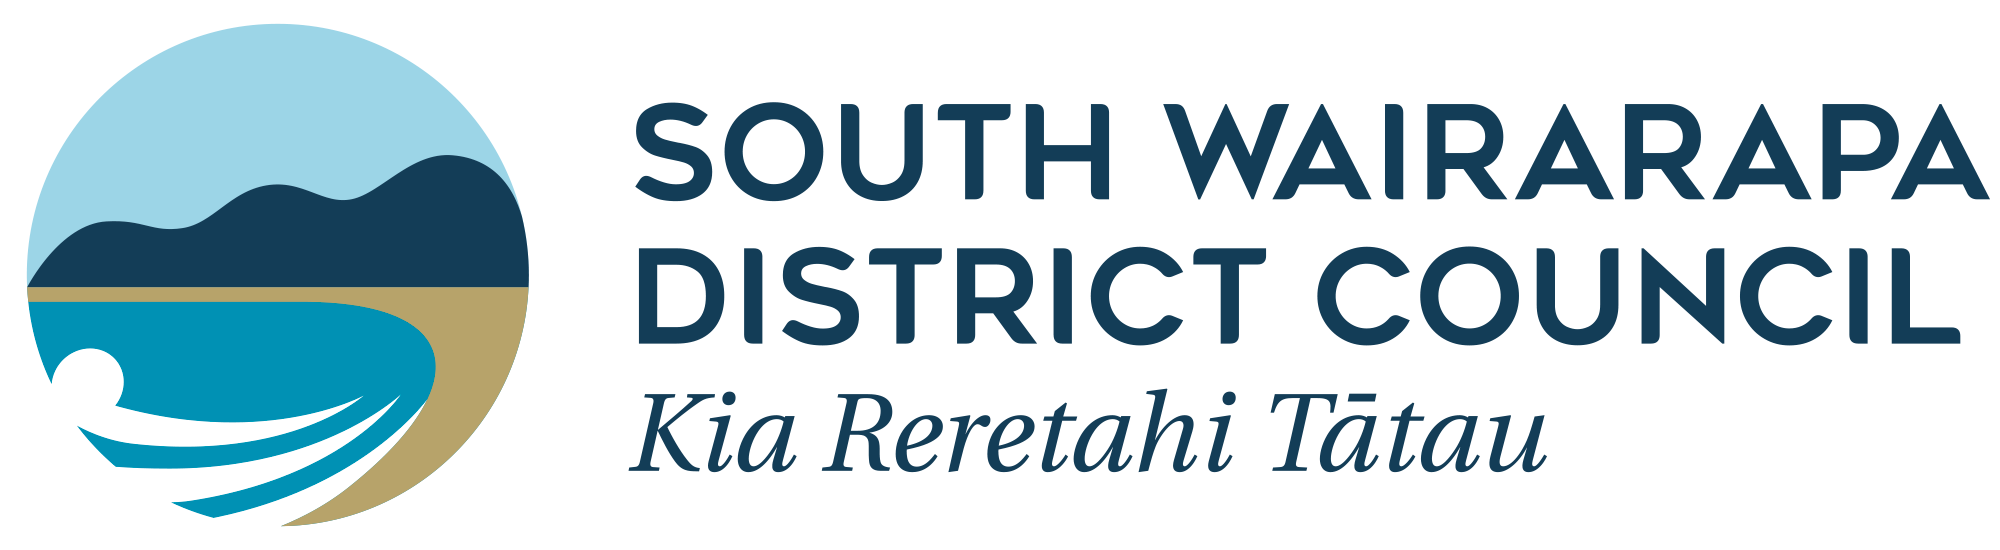 South Wairarapa District Council